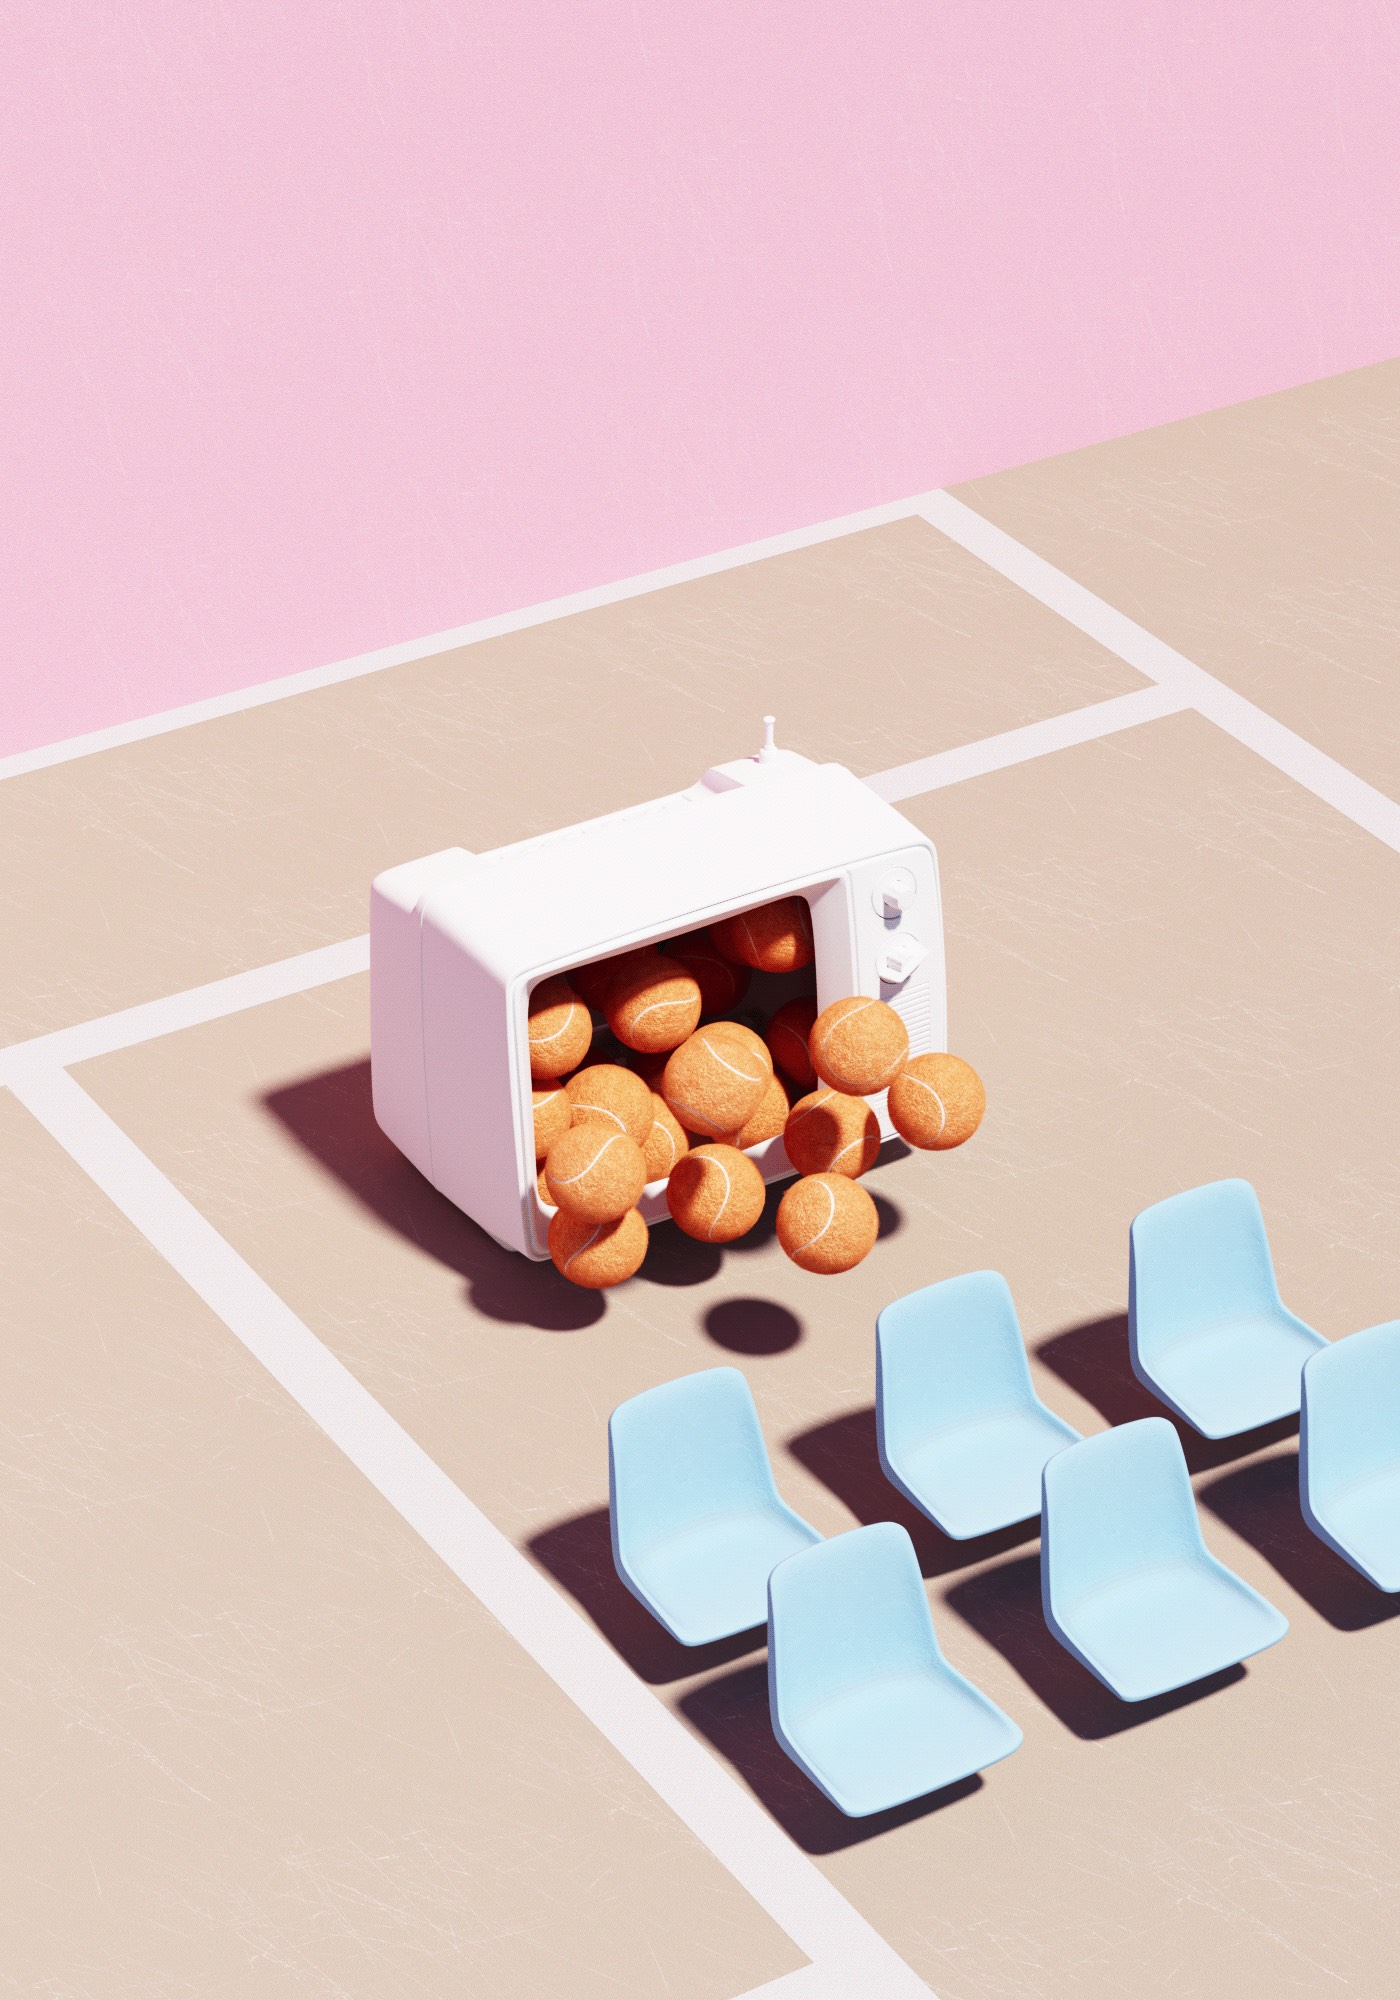 Surreal Tennis Composition with Dreamy Tones – Fubiz Media Design